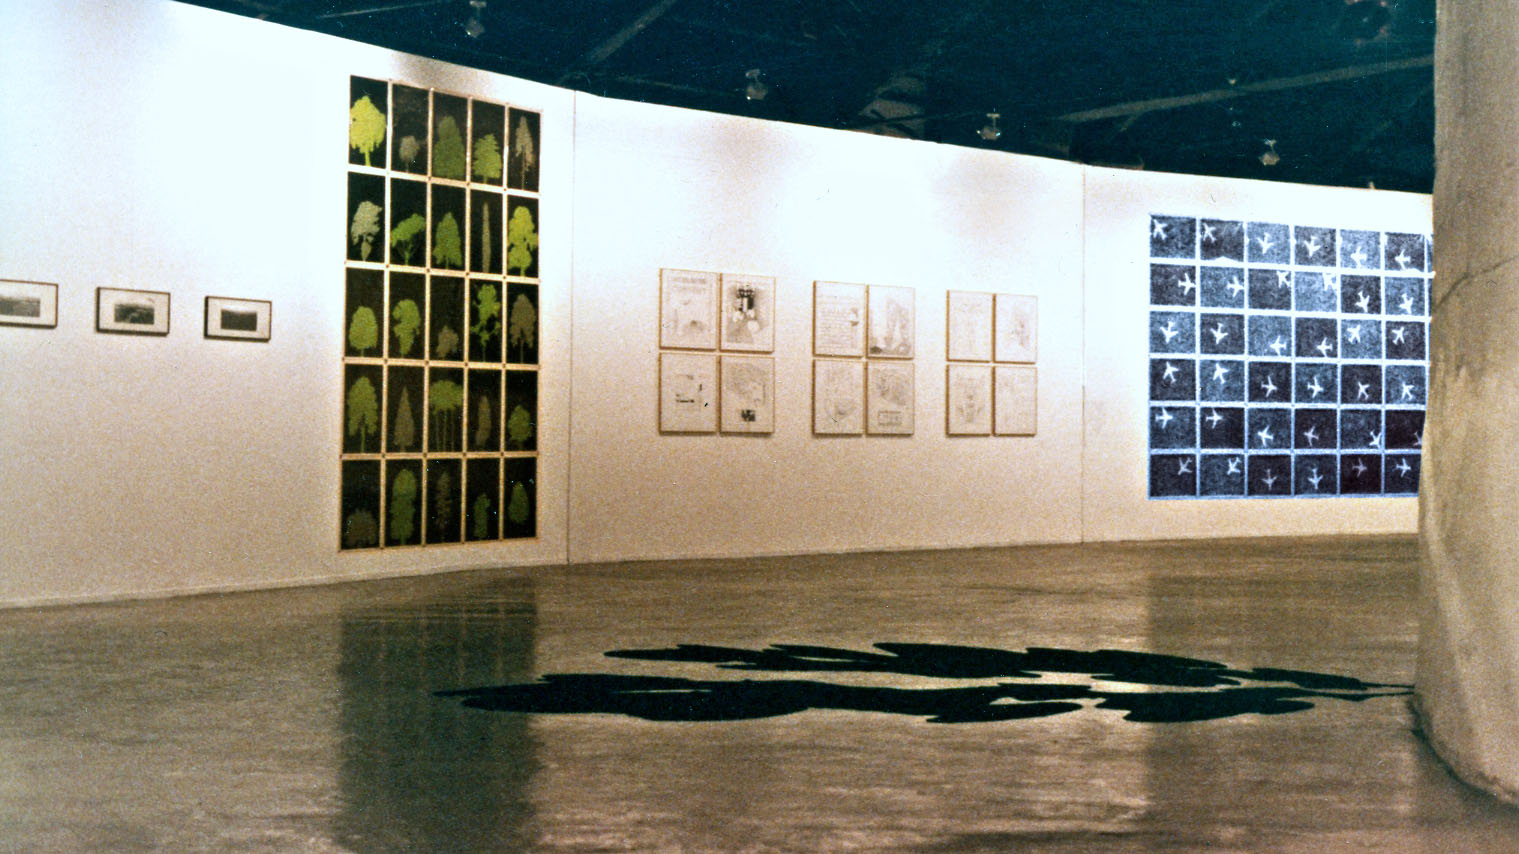 Work from Common Knowledge, Roundhouse Gallery, London 1982